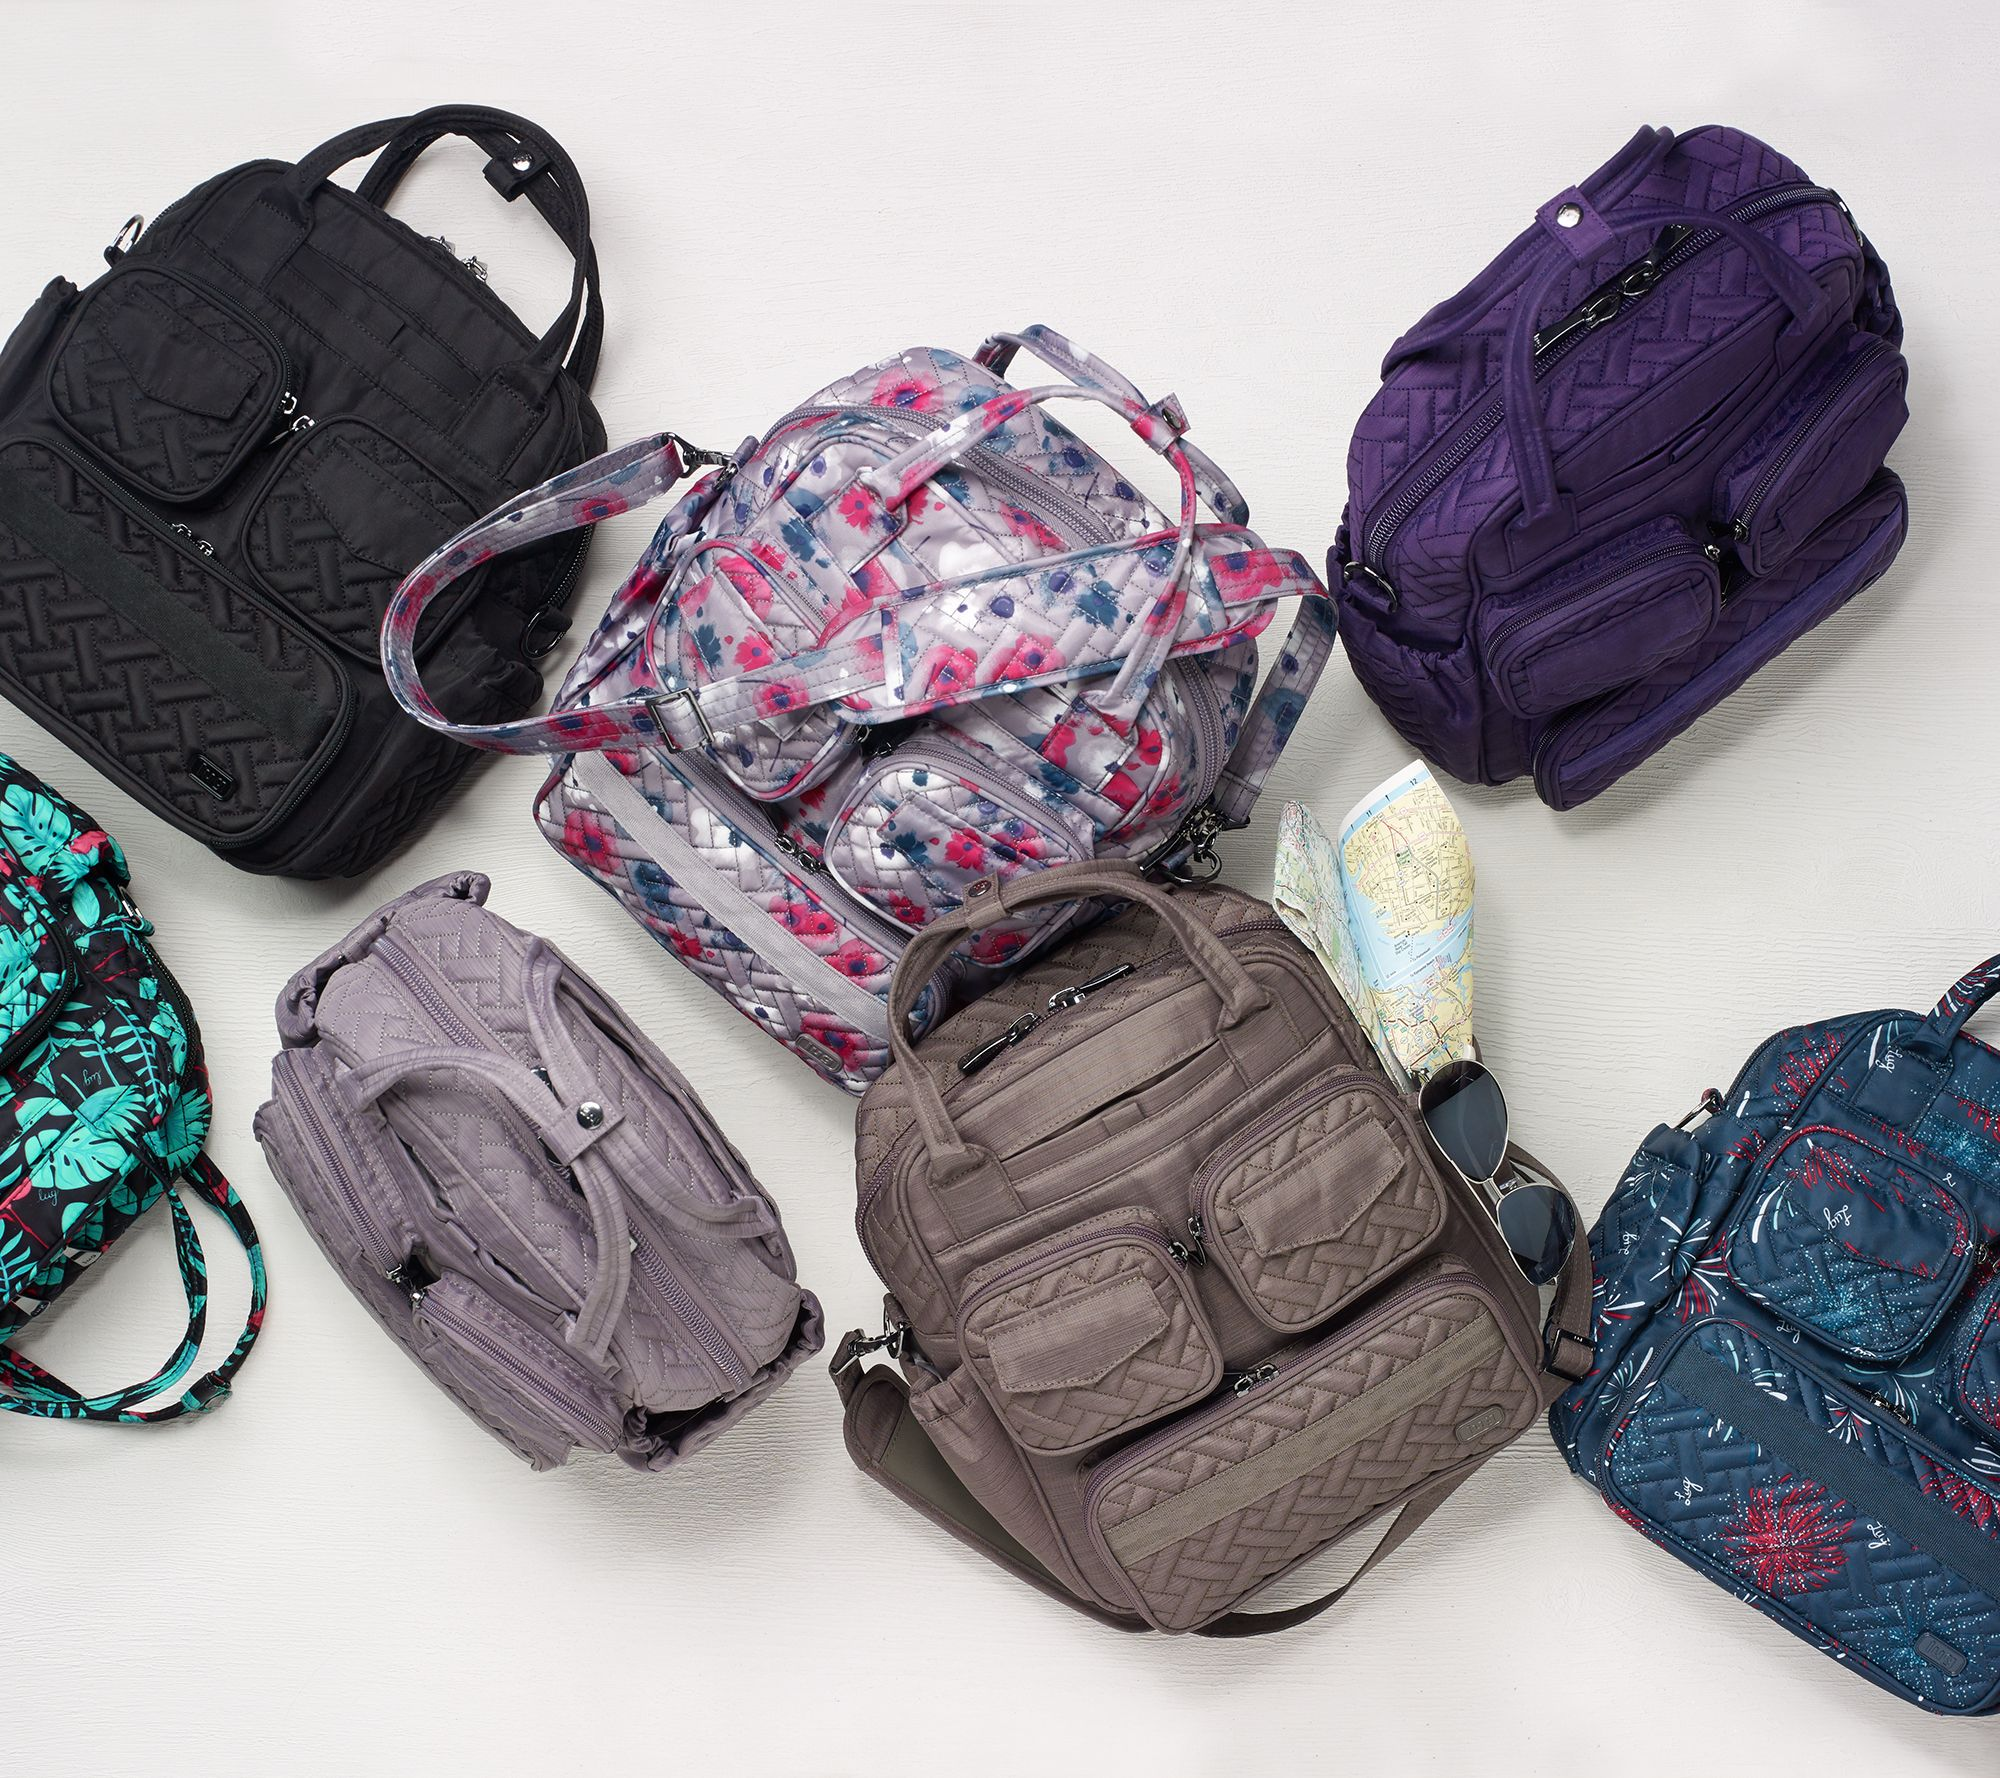 df67e2be6773 Lug Quilted Day Bag - Mini Puddle Jumper 2 — QVC.com